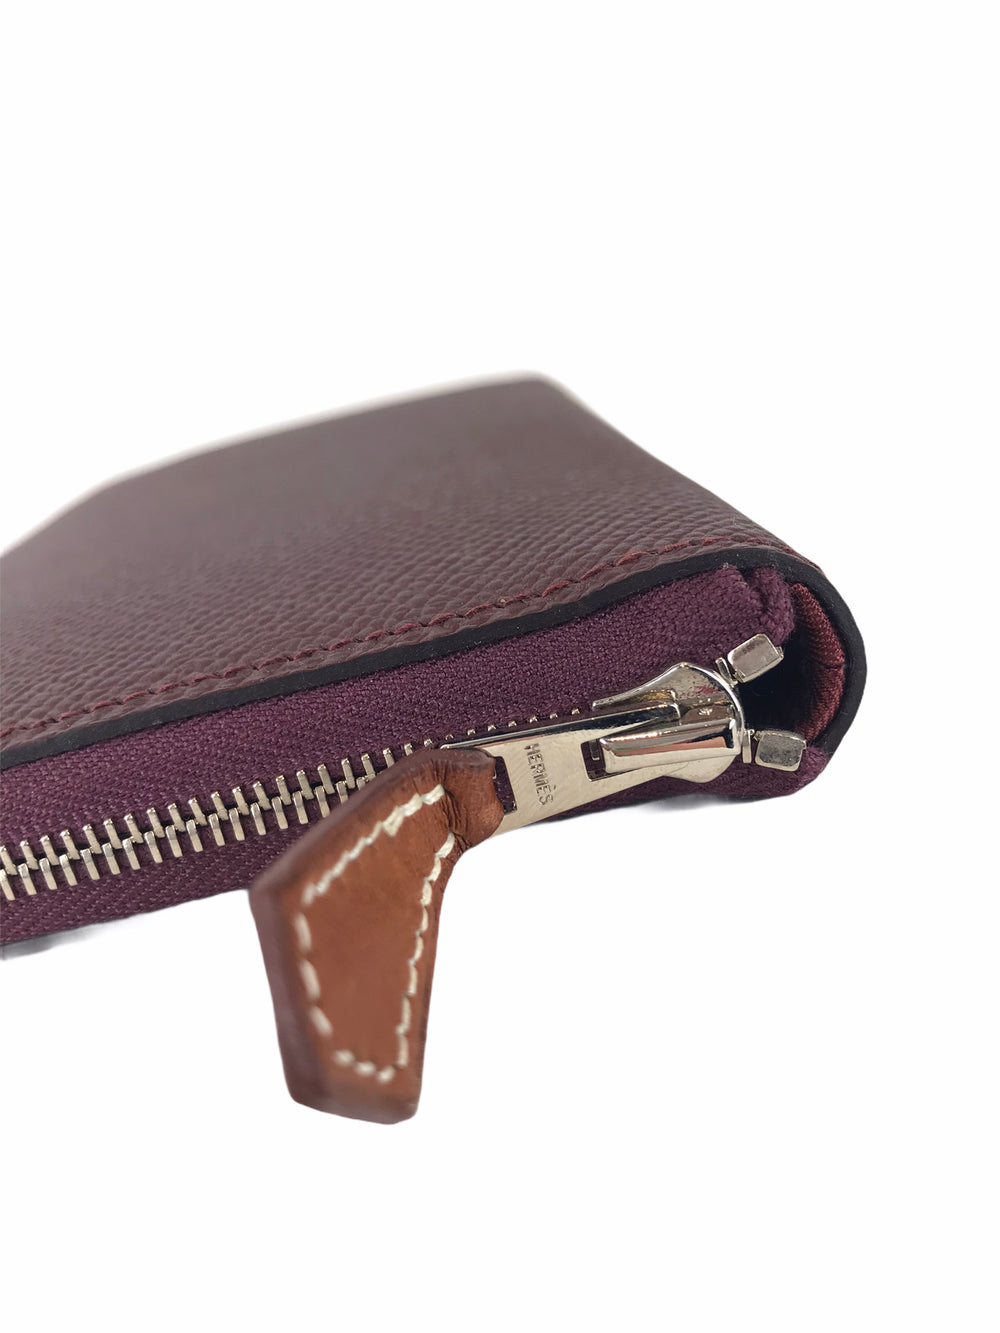 Hermes Bordeaux/Burgundy Leather